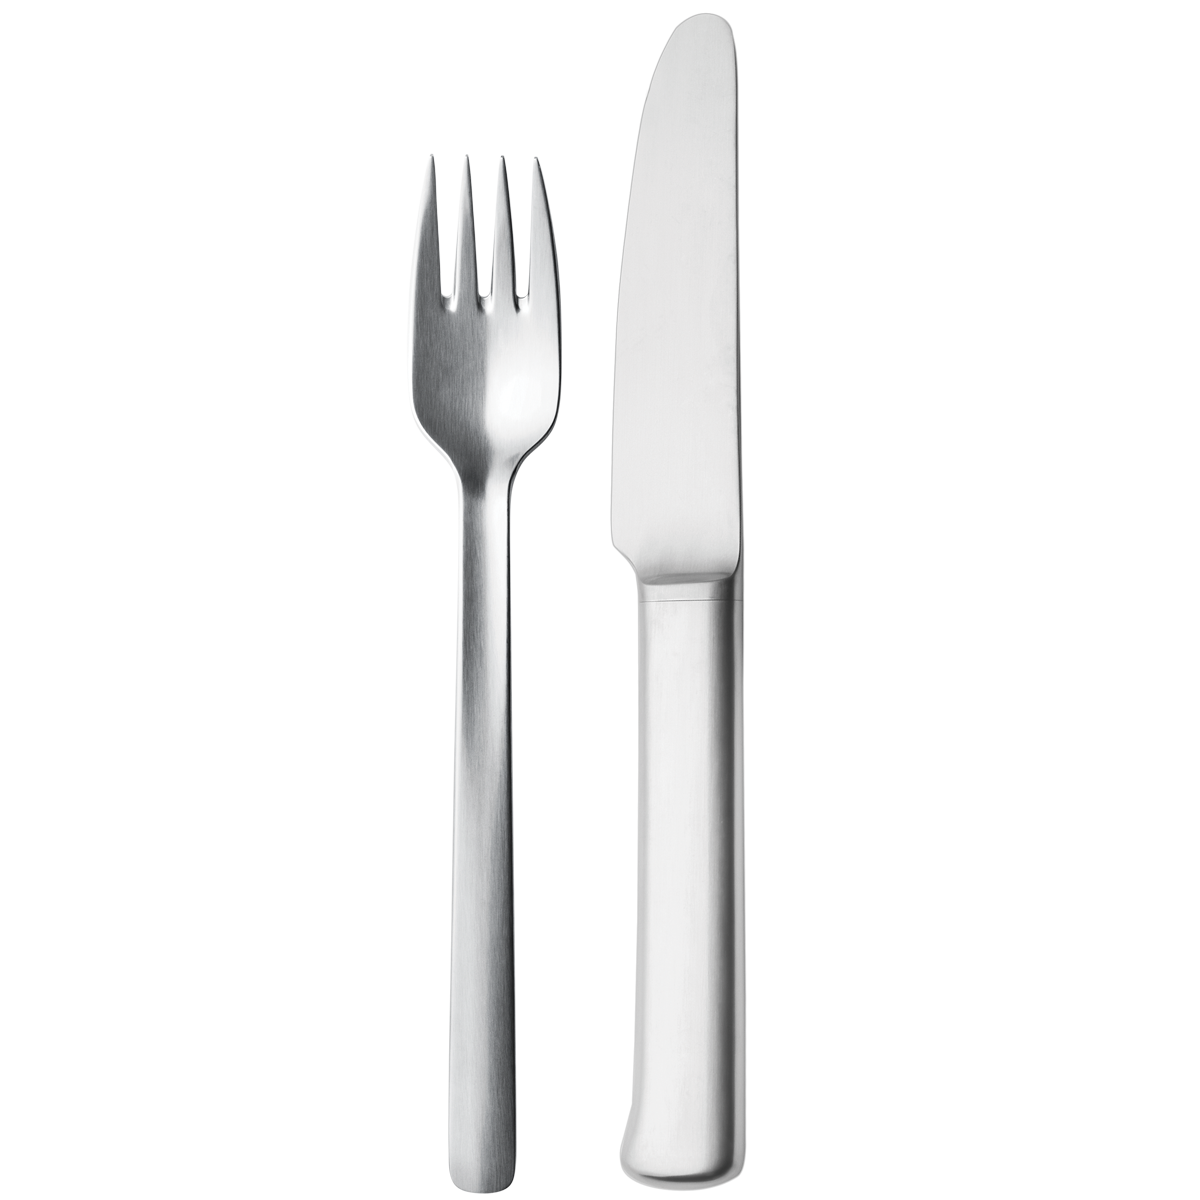 White dinner knife png. Forks images free fork